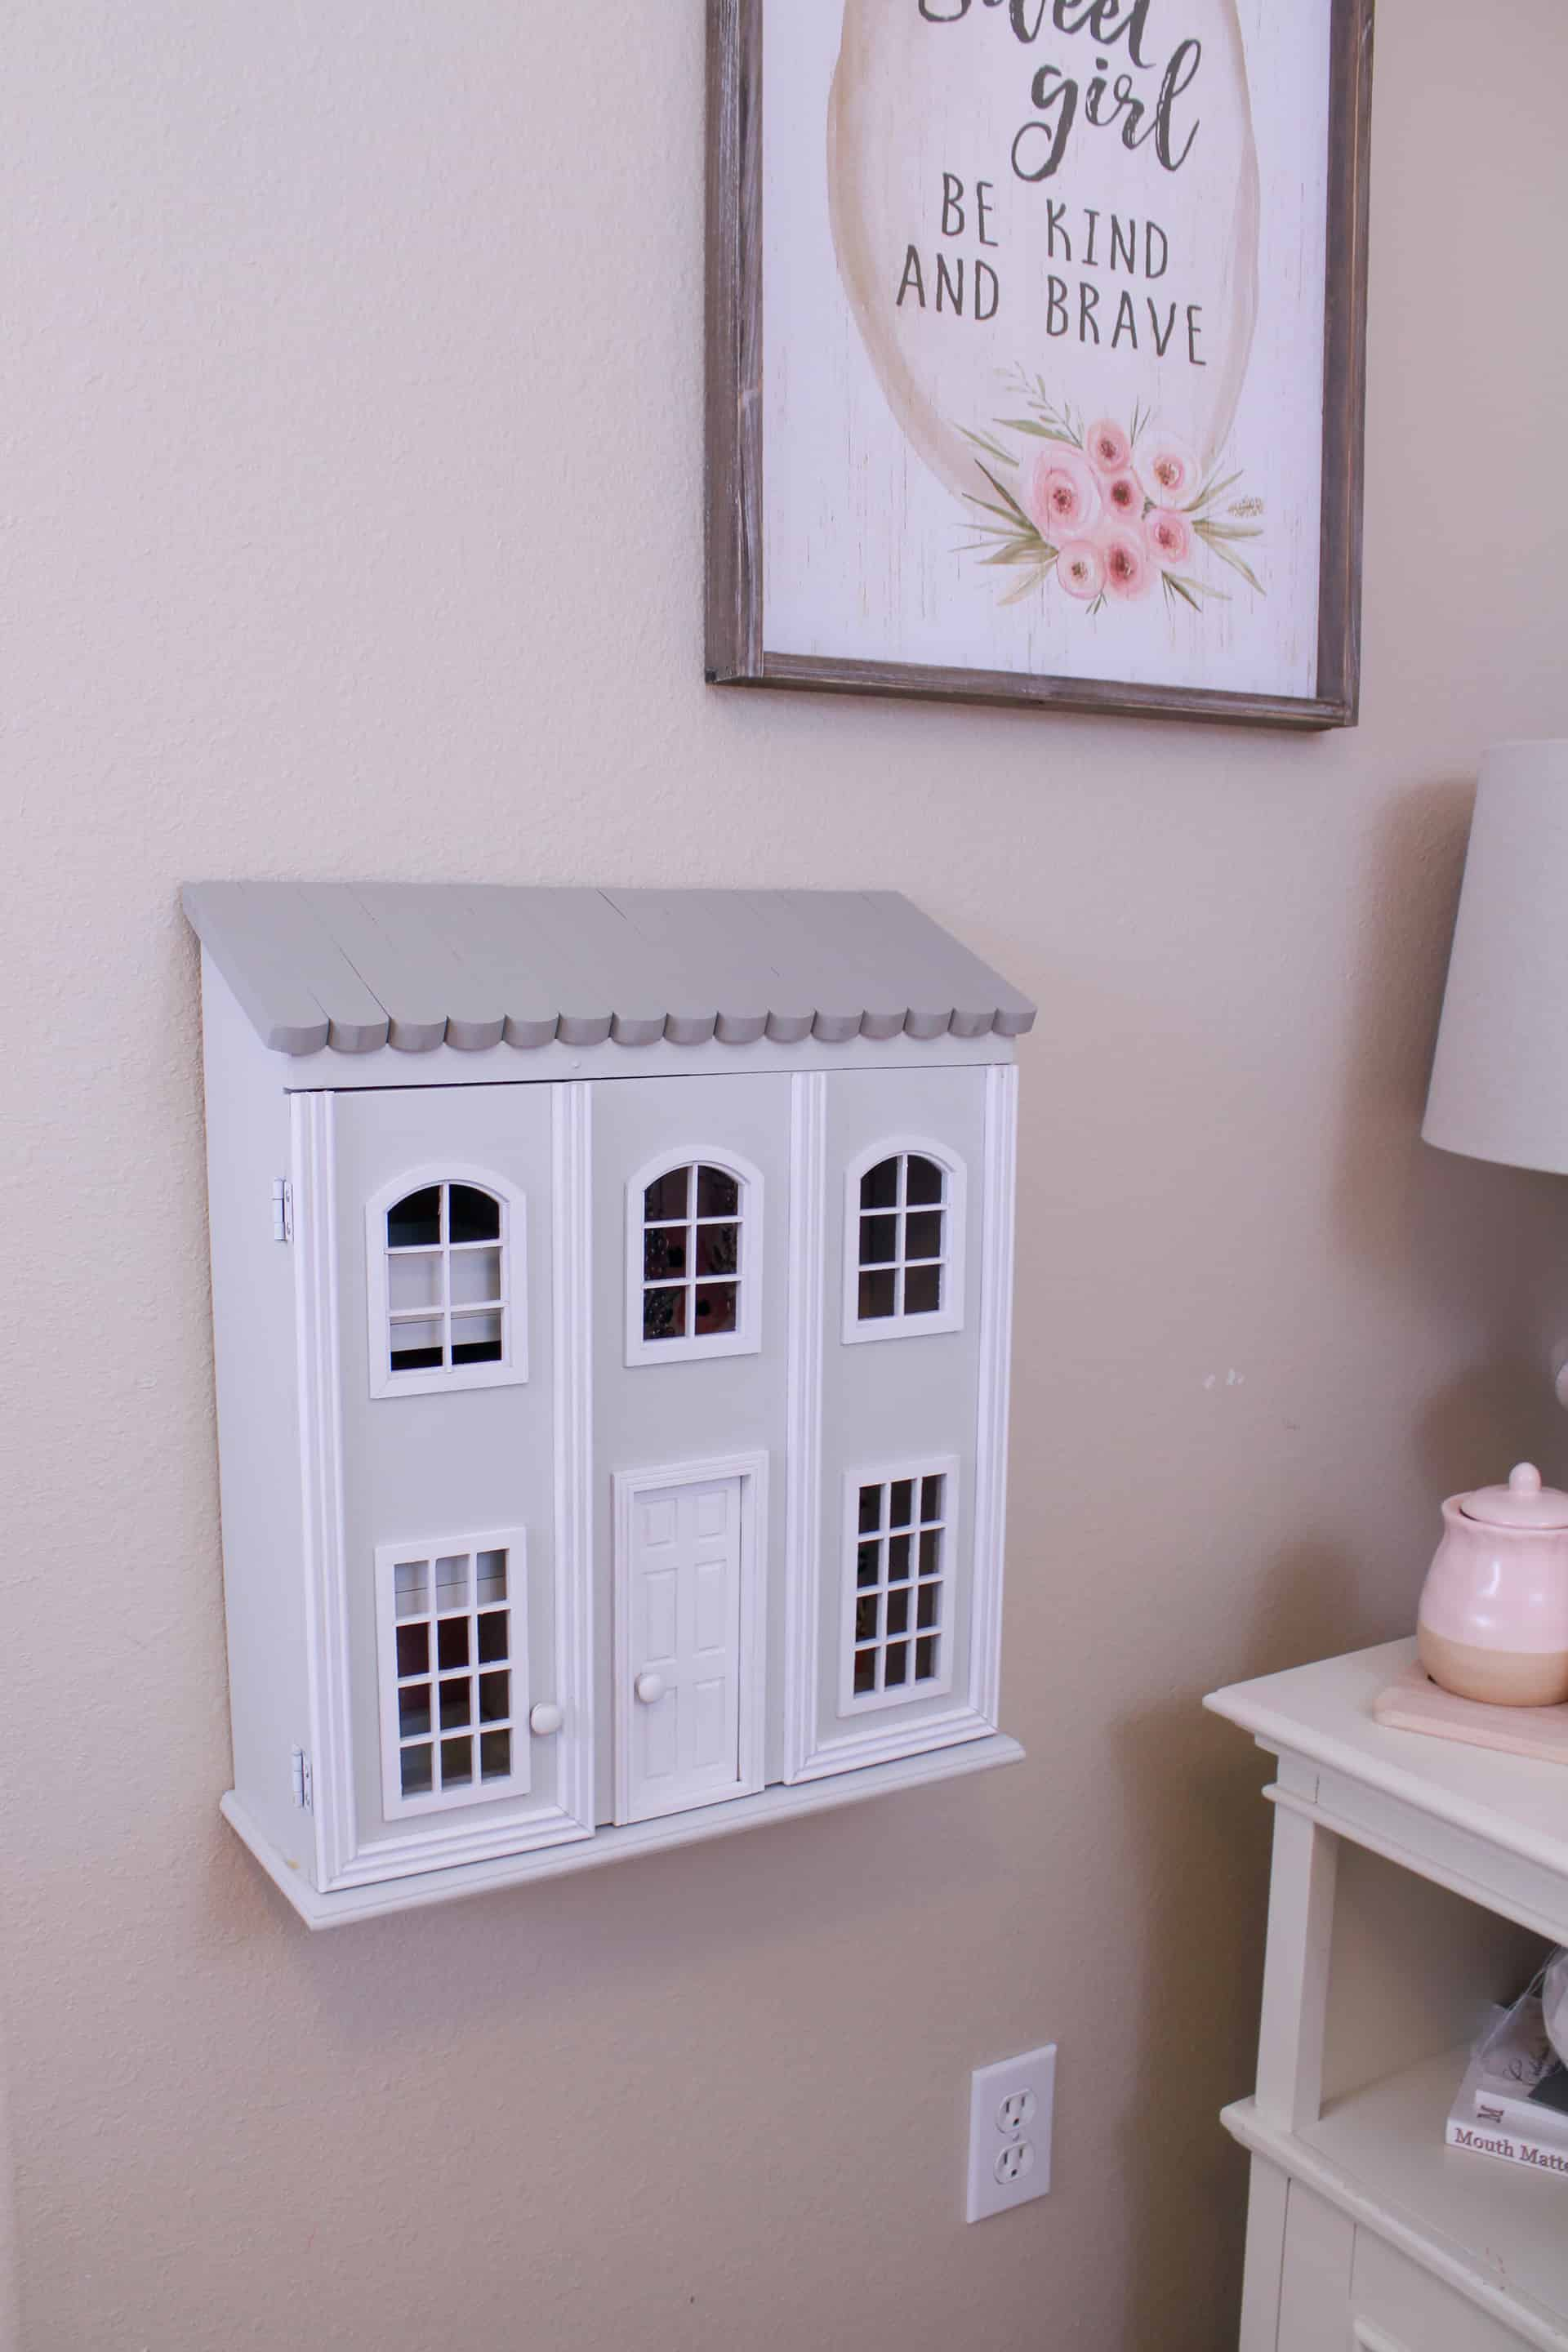 Pottery Barn Kids knockoff dollhouse jewelry cabinet